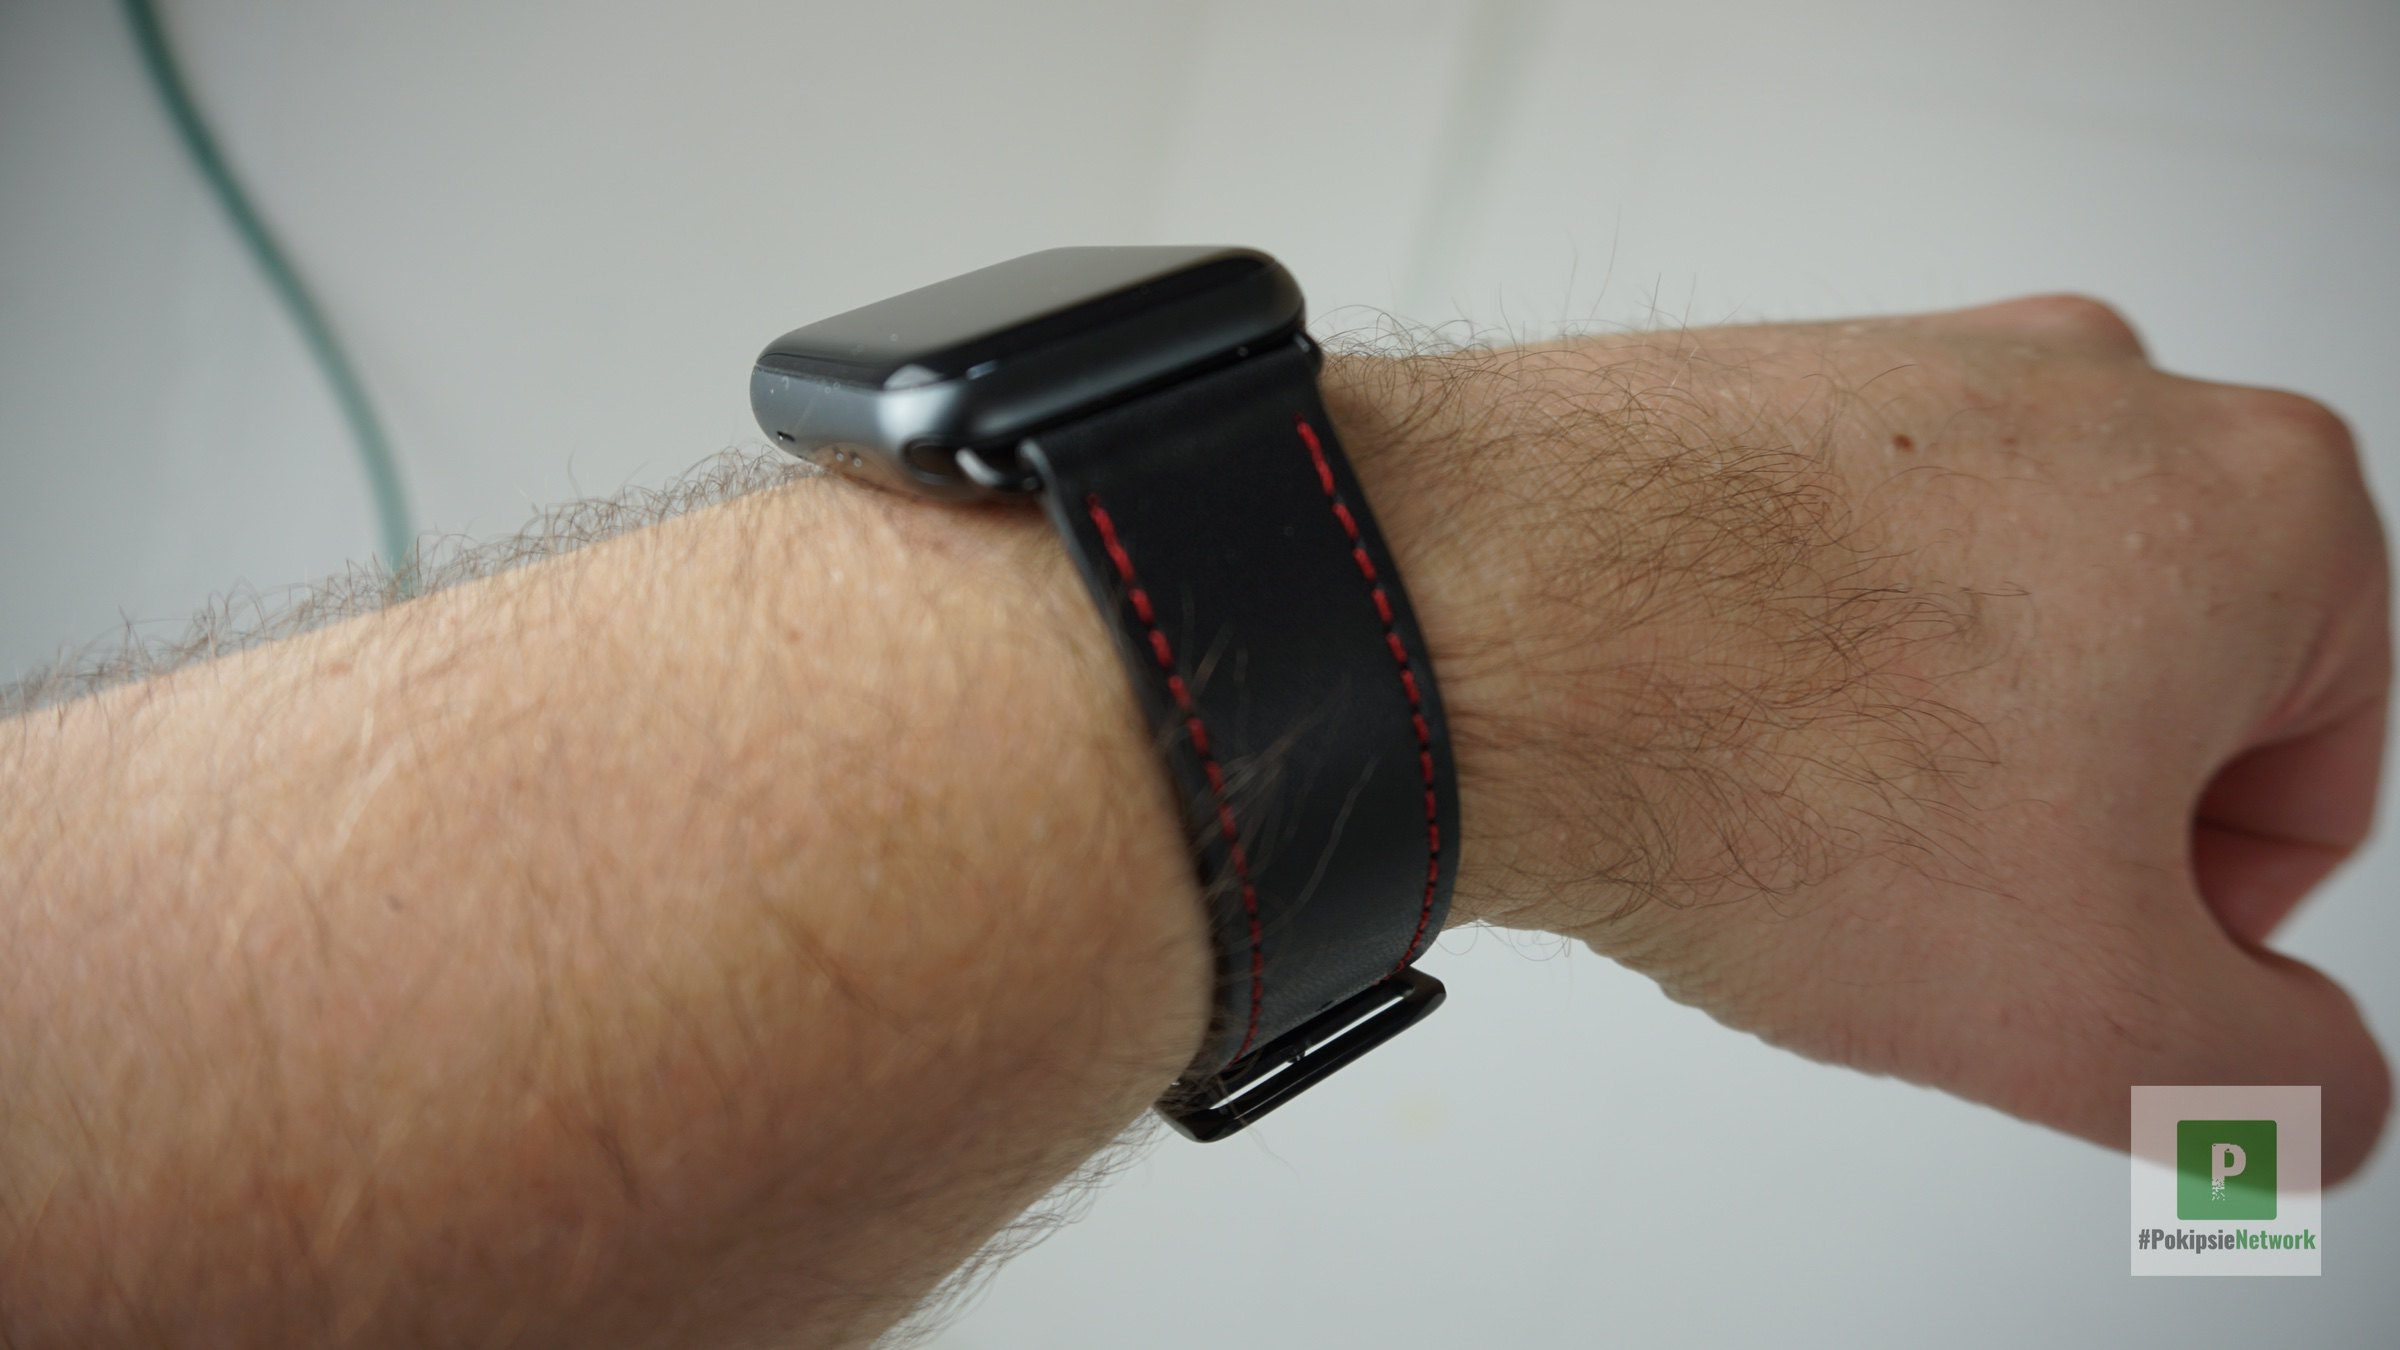 bluestein Lederarmband für die Apple Watch